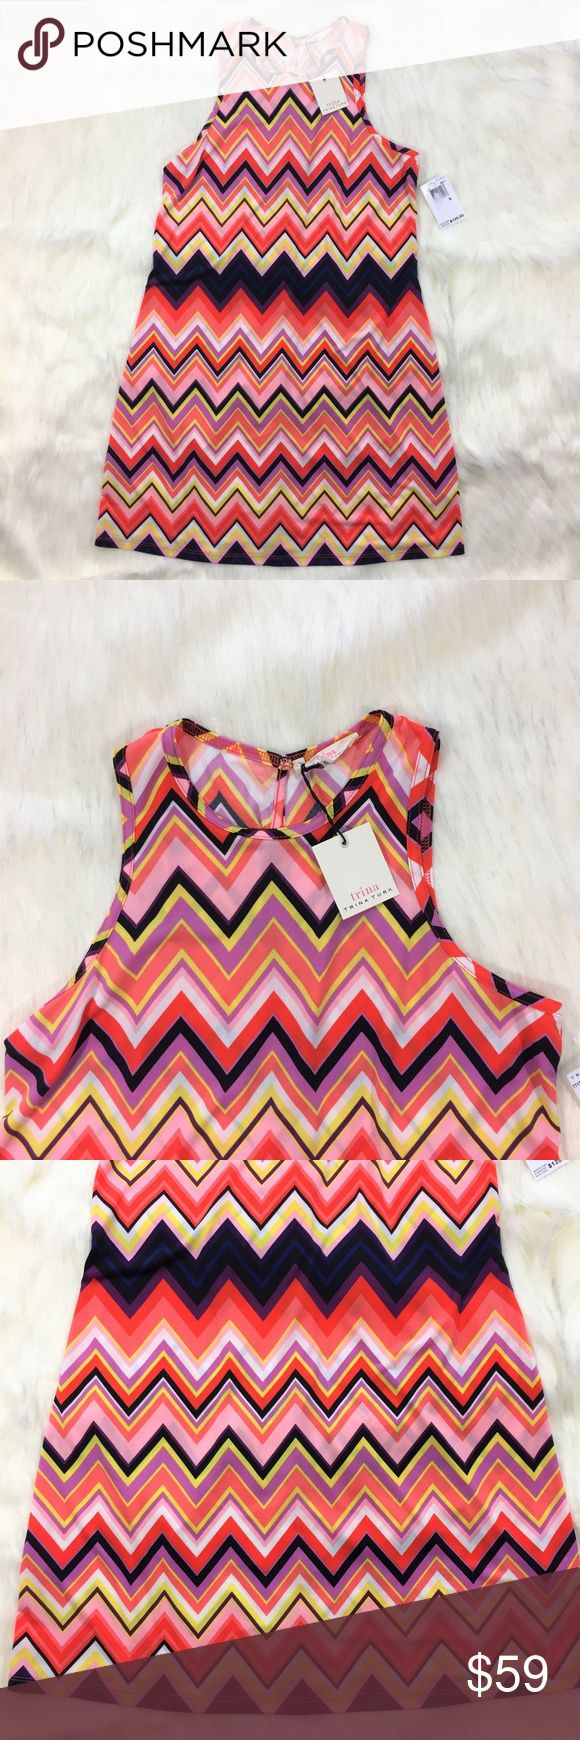 NEW Trina Turk Zig Zag Print Shift Dress Size S Super cute sleeveless shift dress in zig zag print with purple, red-orange and yellow colors. Key hole opening in back with hook and eye closure. 95% Polyester, 5% Spandex Machine wash Approximate measurements: Bust 17"